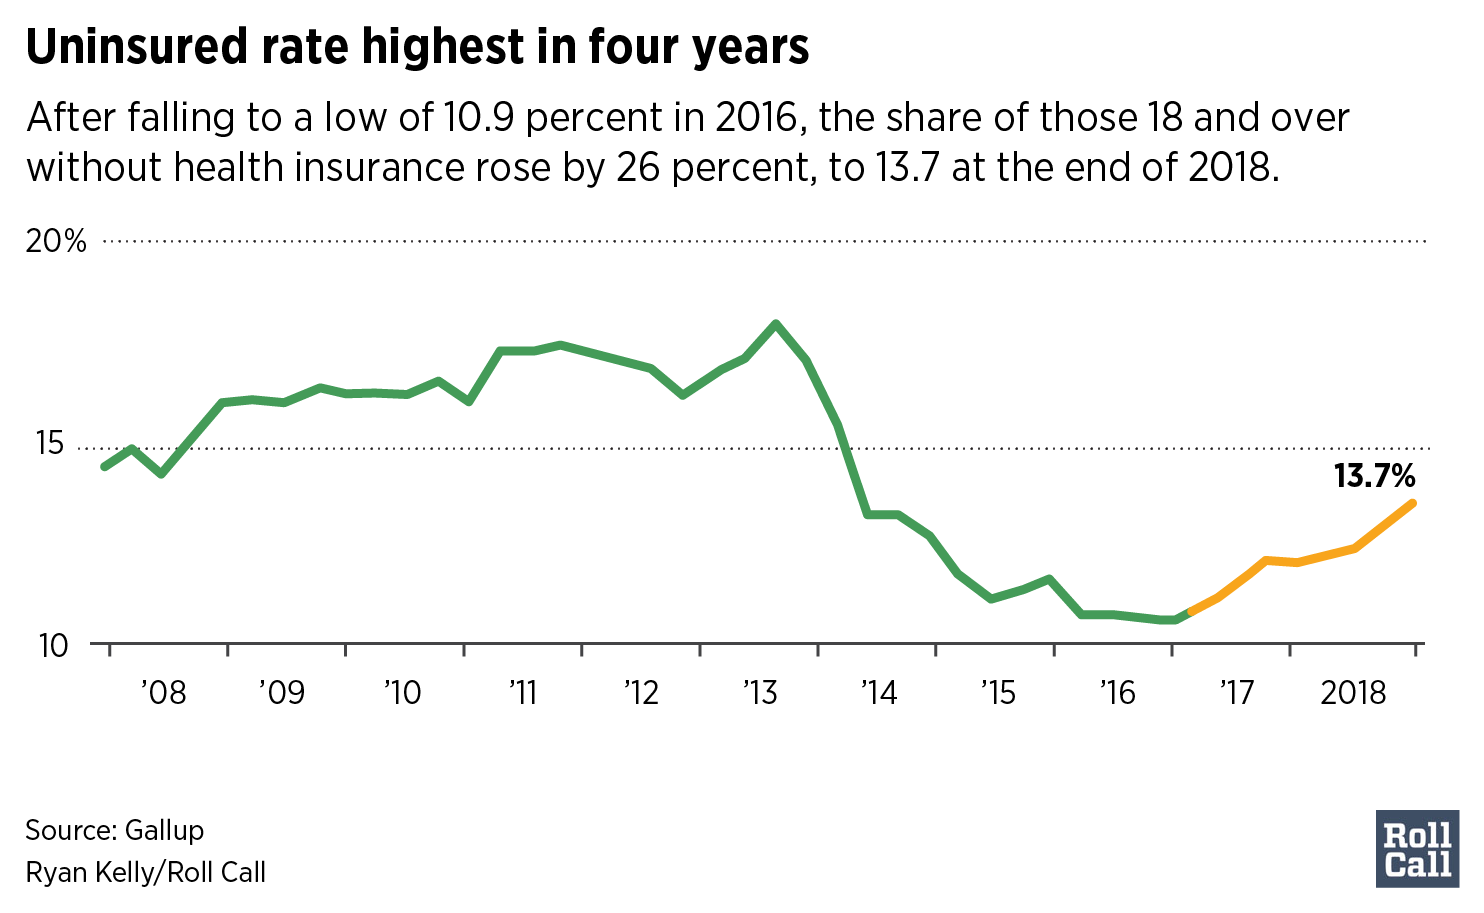 Uninsured rate highest in four years